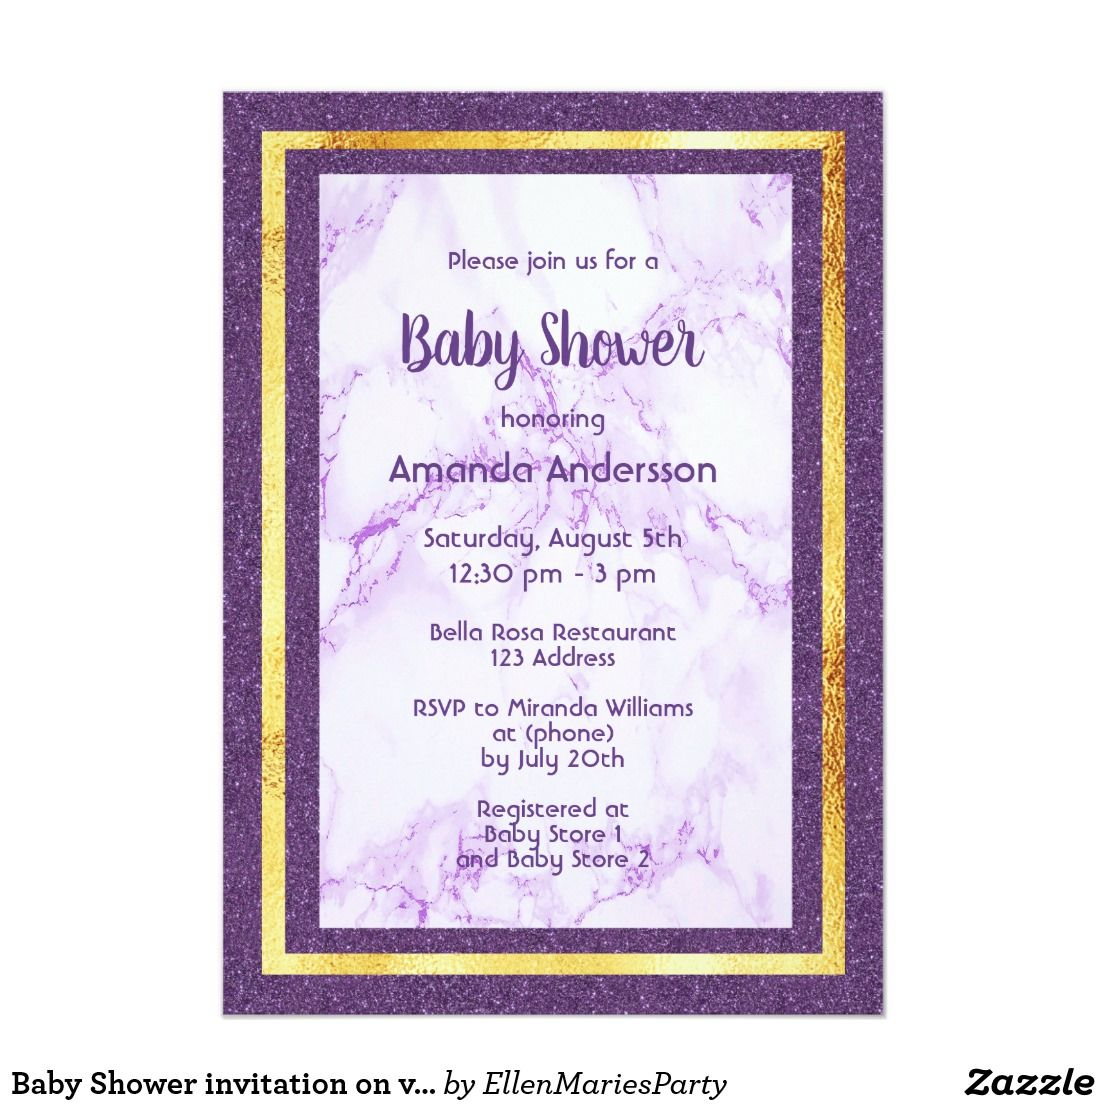 Baby Shower Invitation Letter Brilliant Baby Shower Invitation On Violet Marble Glitter  Elegant .